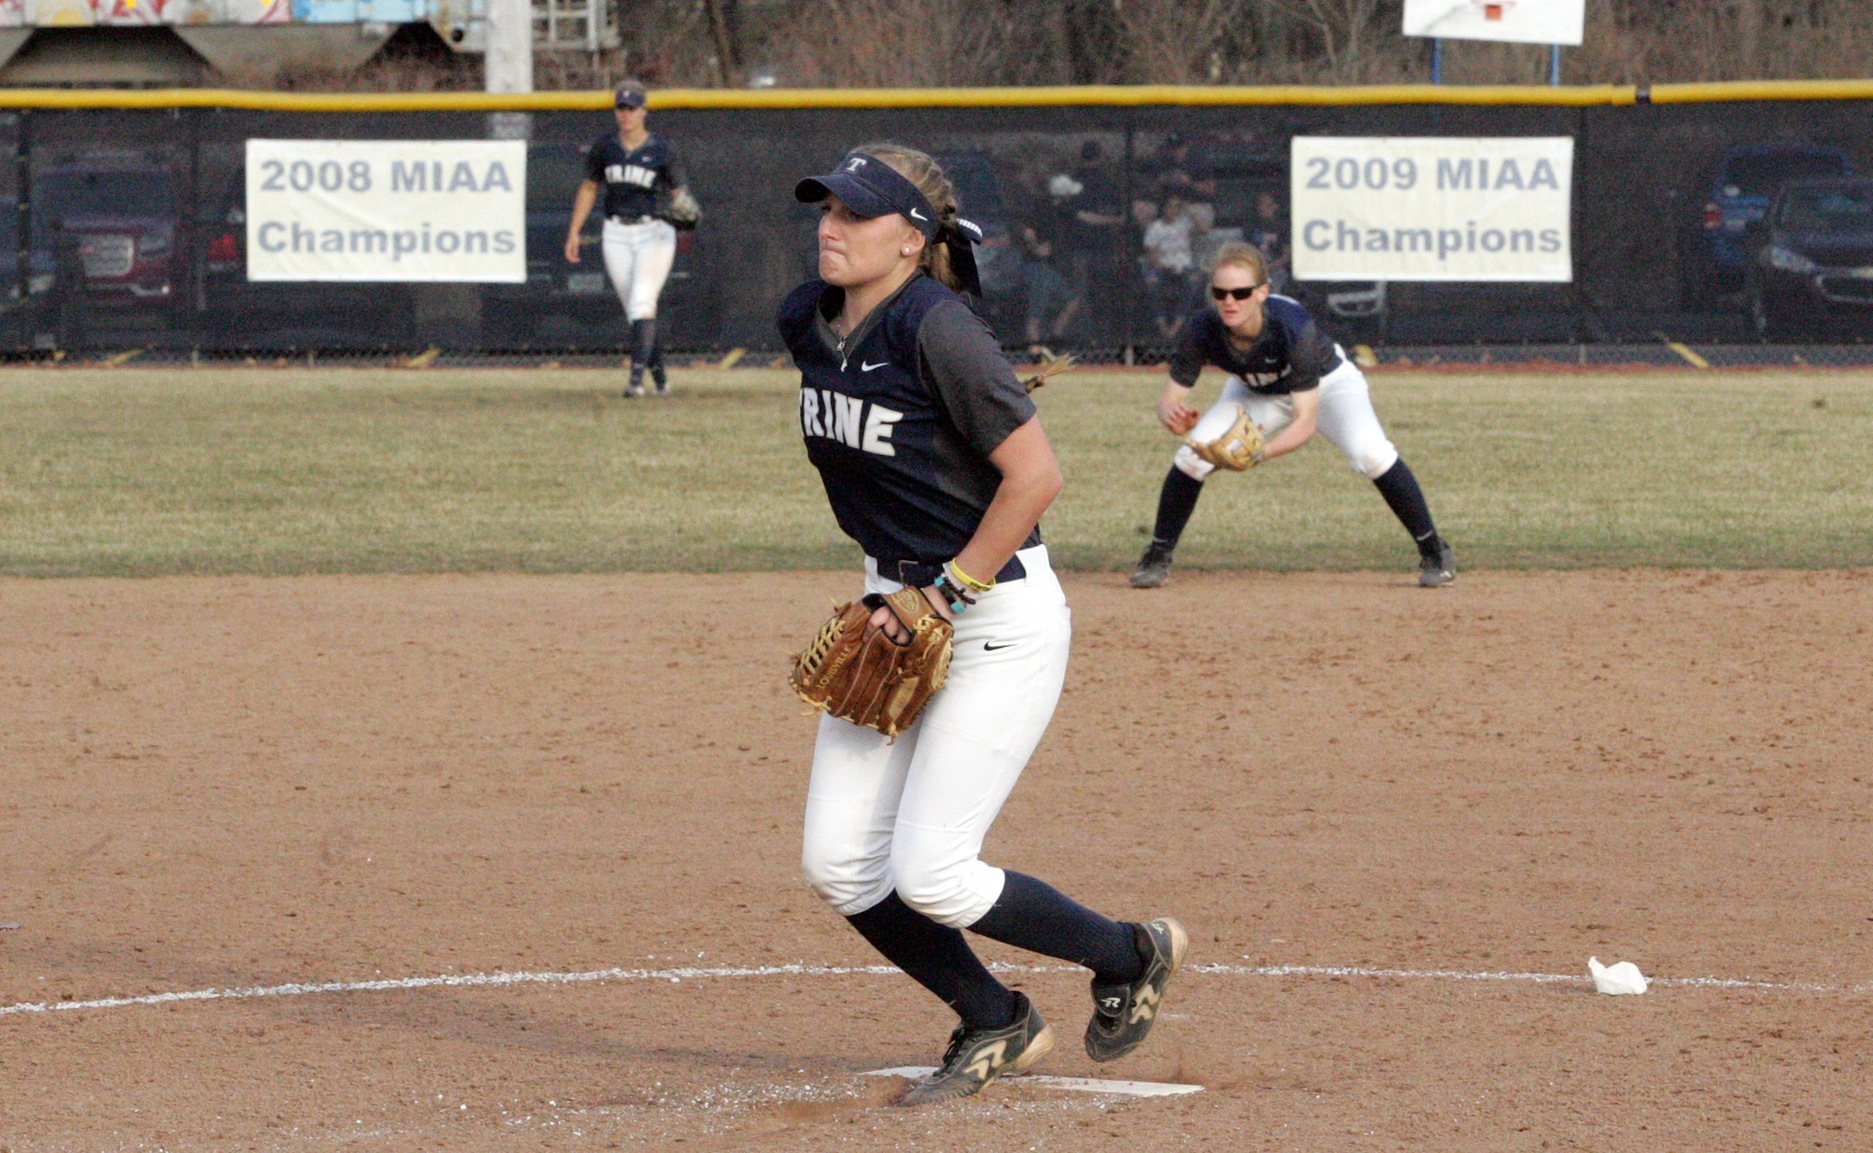 Softball Ranked Ninth in Latest Top 25 Poll